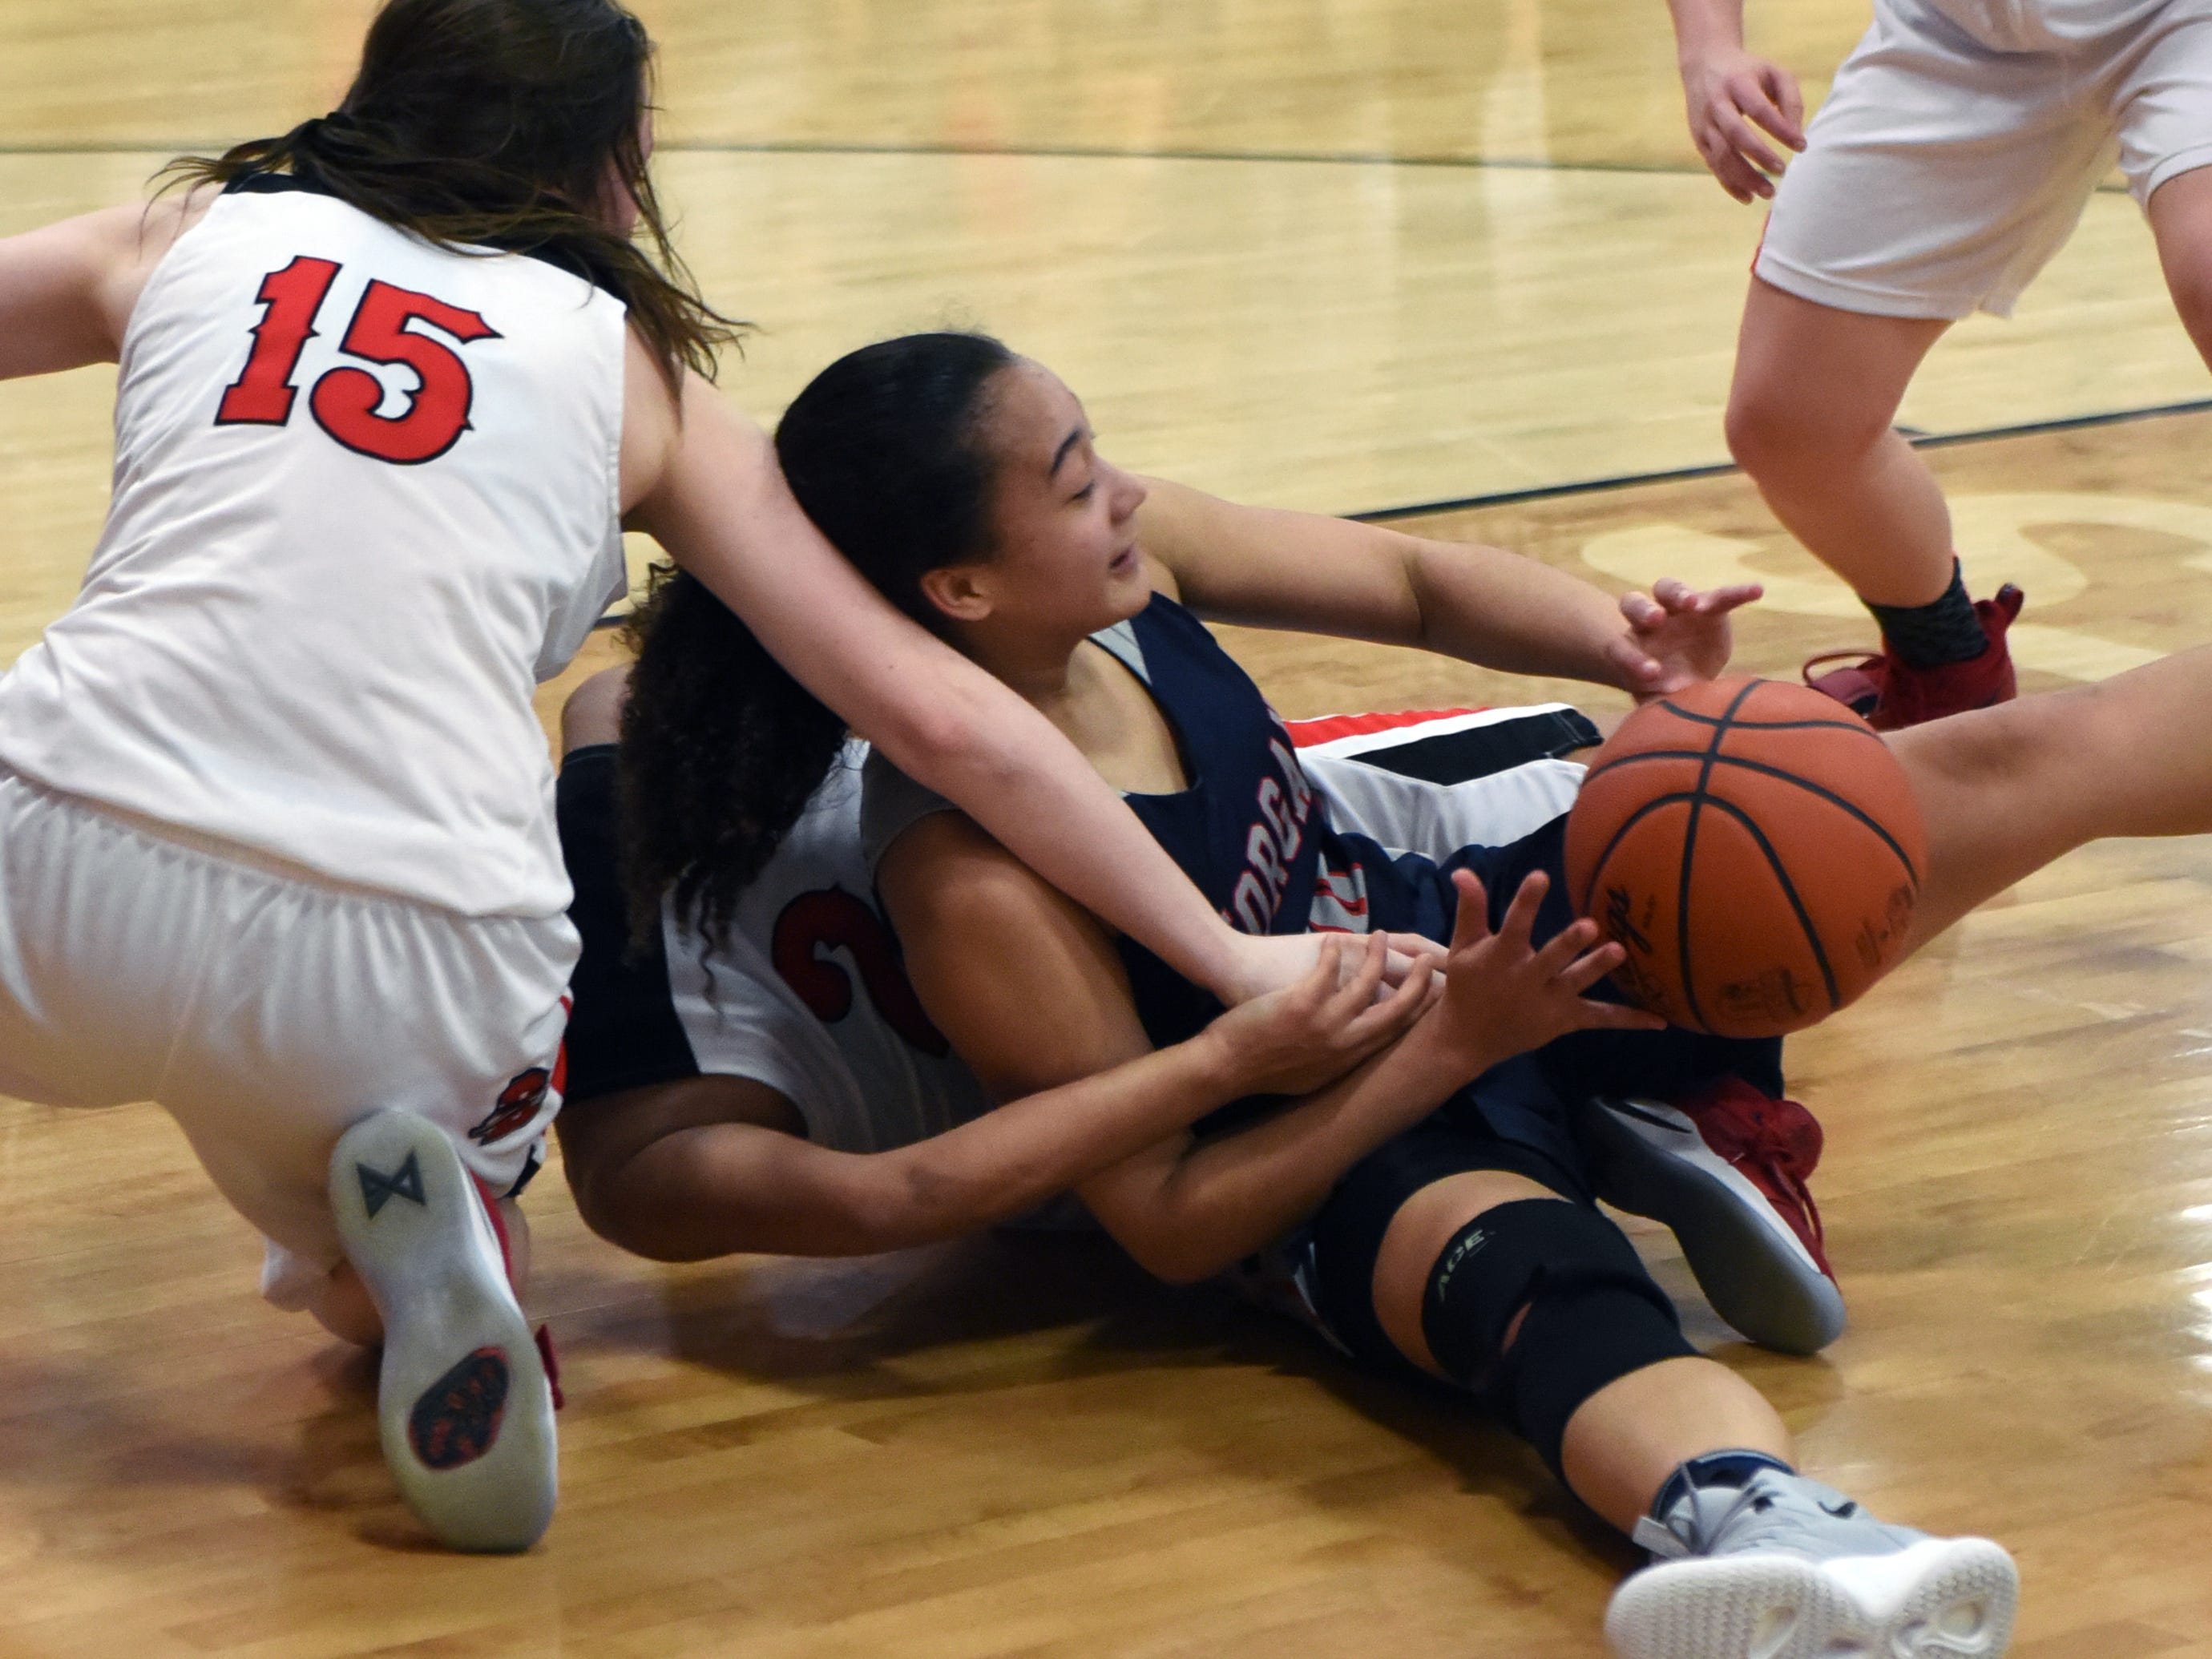 Heaven Williams emerges with a loose ball during the fourth quarter of Morgan's 46-44 win against Bellaire on Saturday in a Division III district final at Meadowbrook High School.